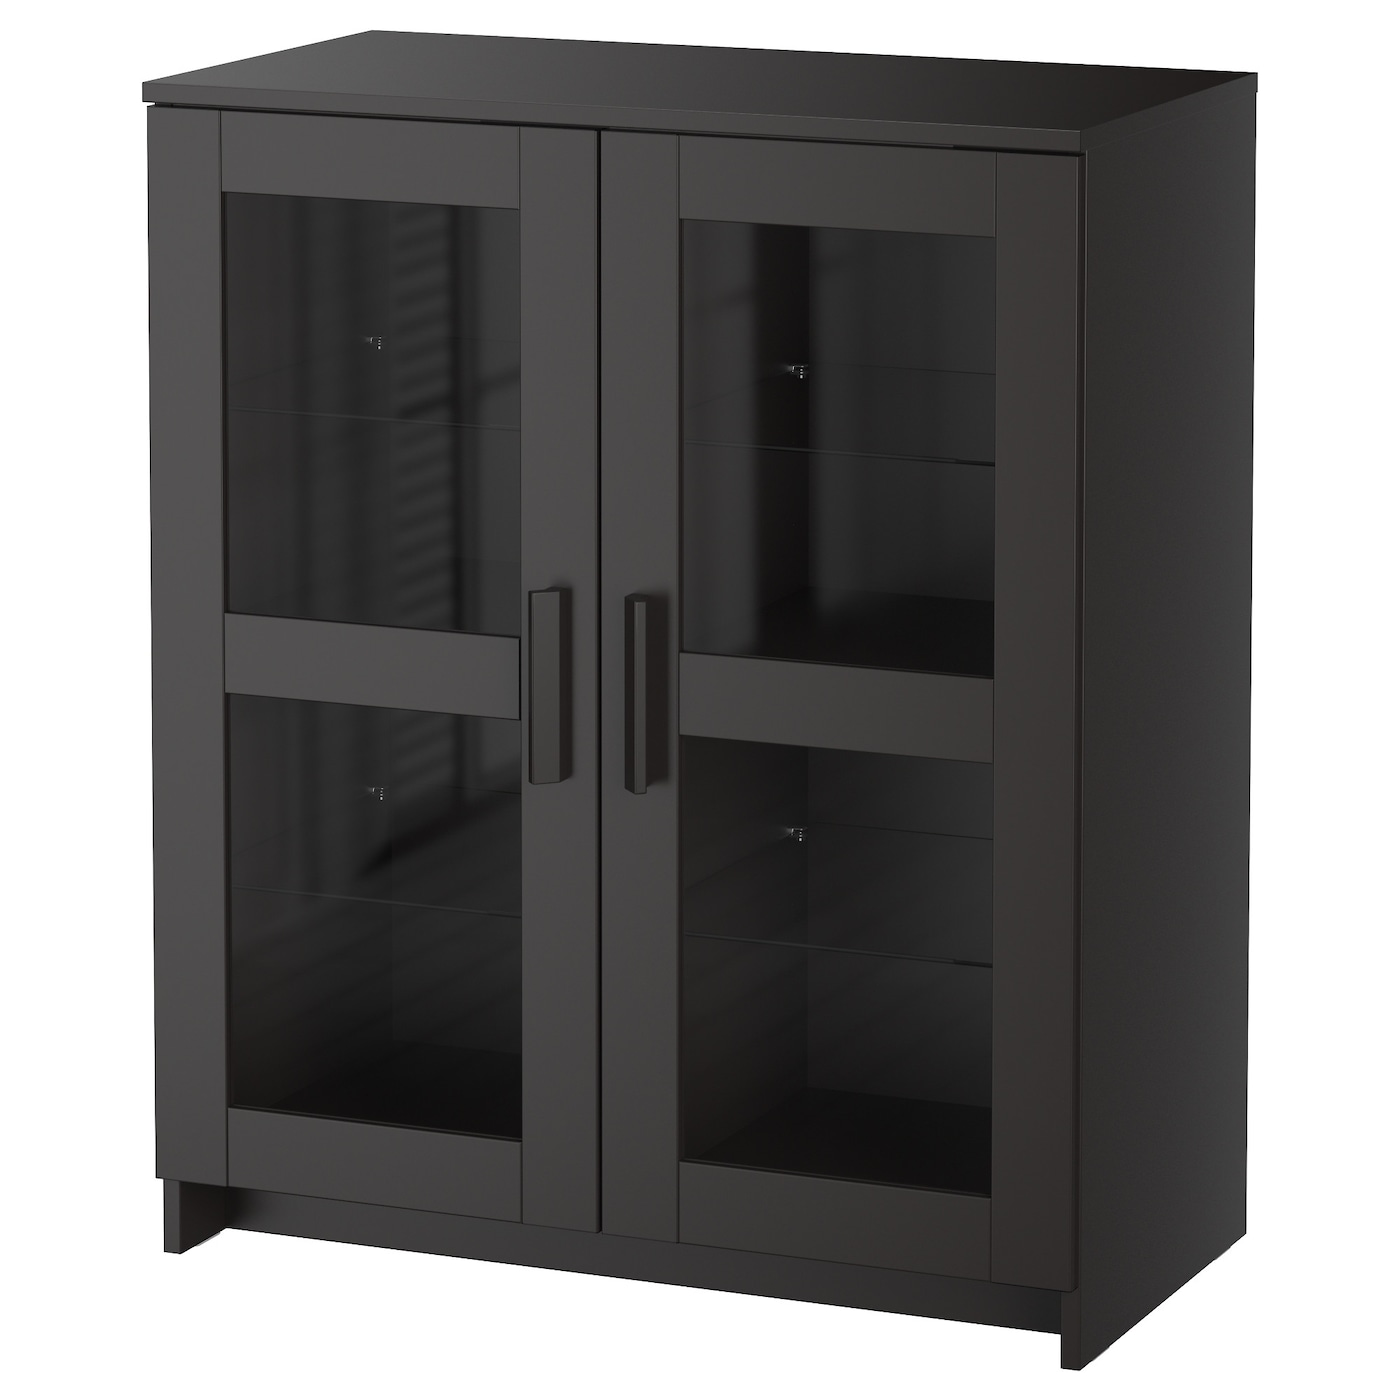 Brimnes cabinet with doors glass black 78x95 cm ikea - Ikea glass cabinets ...